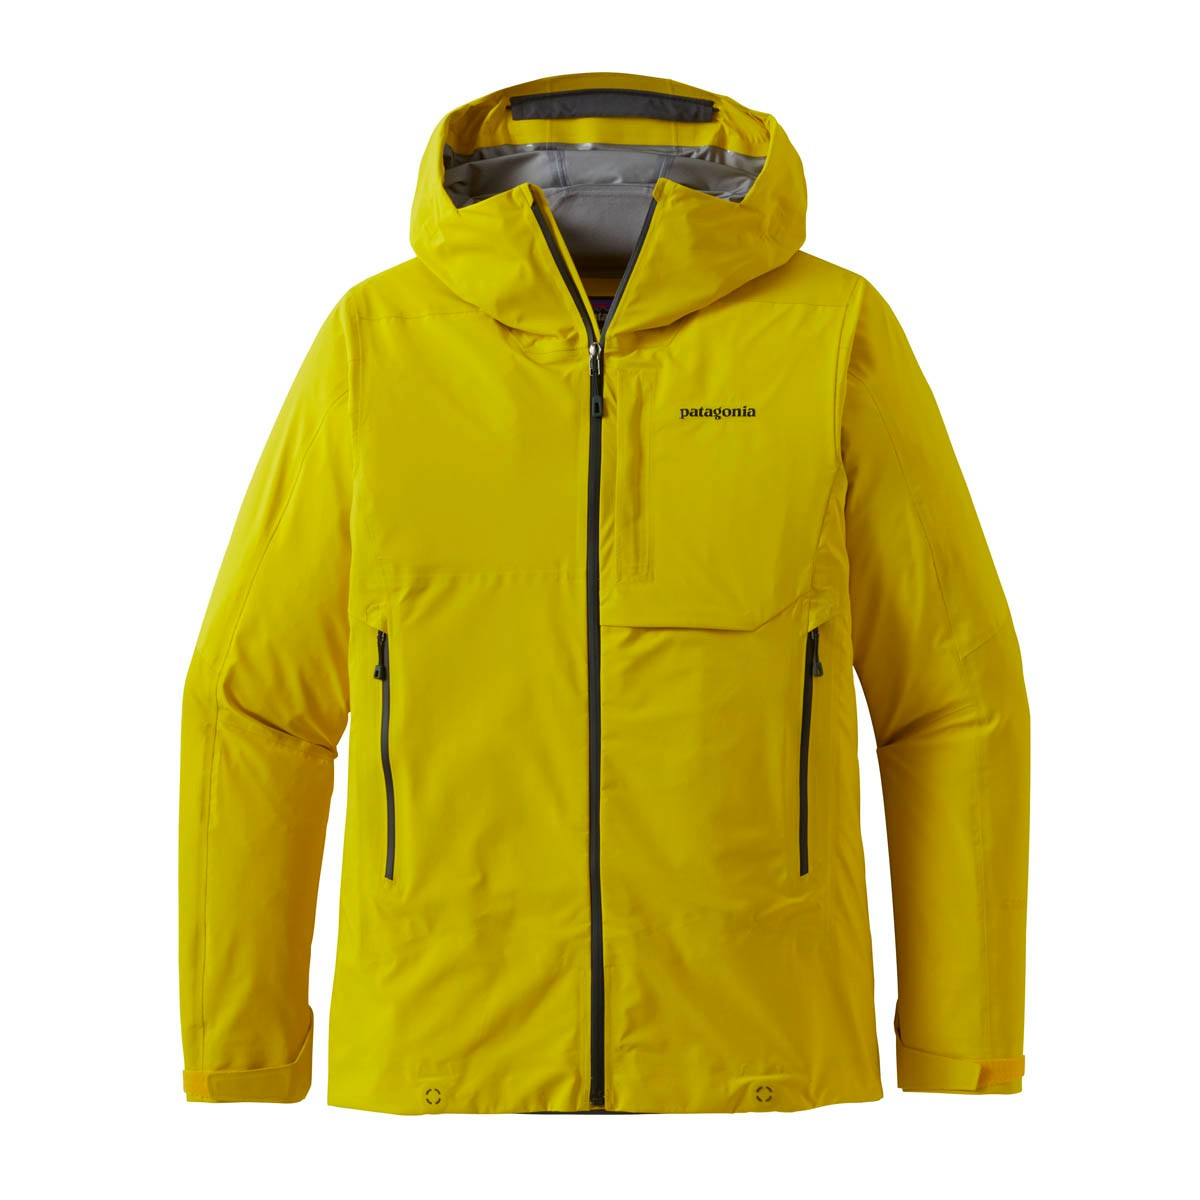 Patagonia Refugitive Jacket, technical jacket, mountain jacket ...